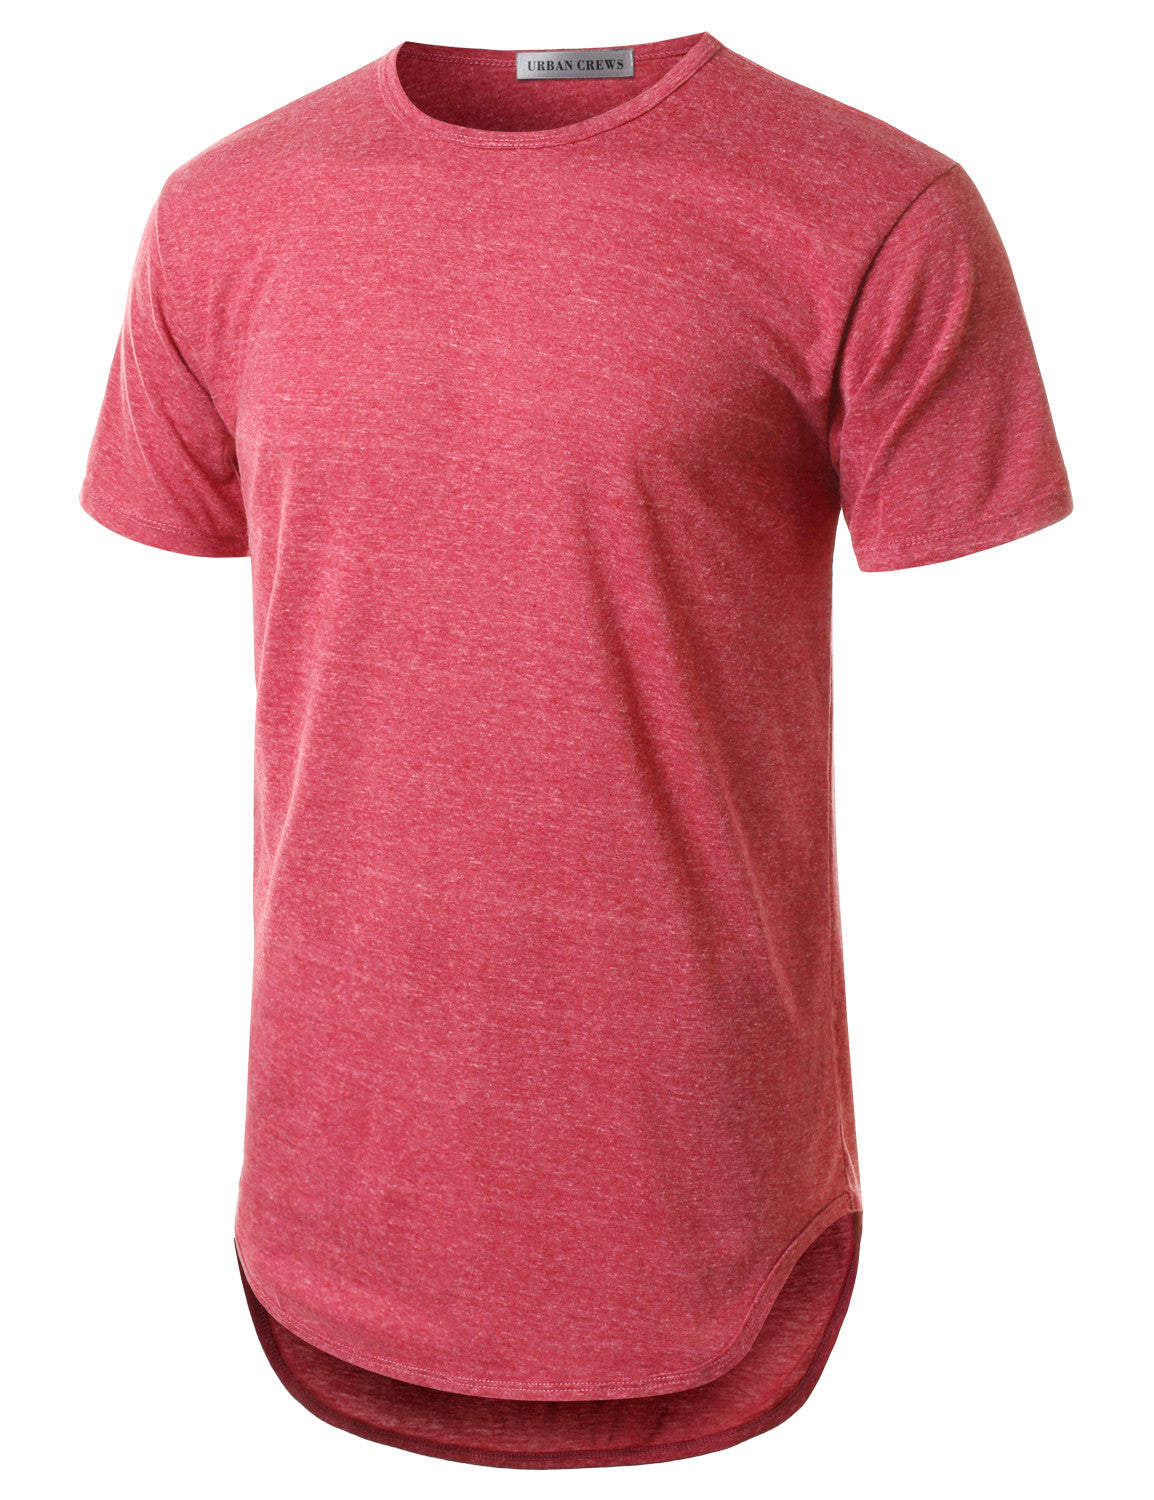 RED Basic Crewneck Longline Tshirts